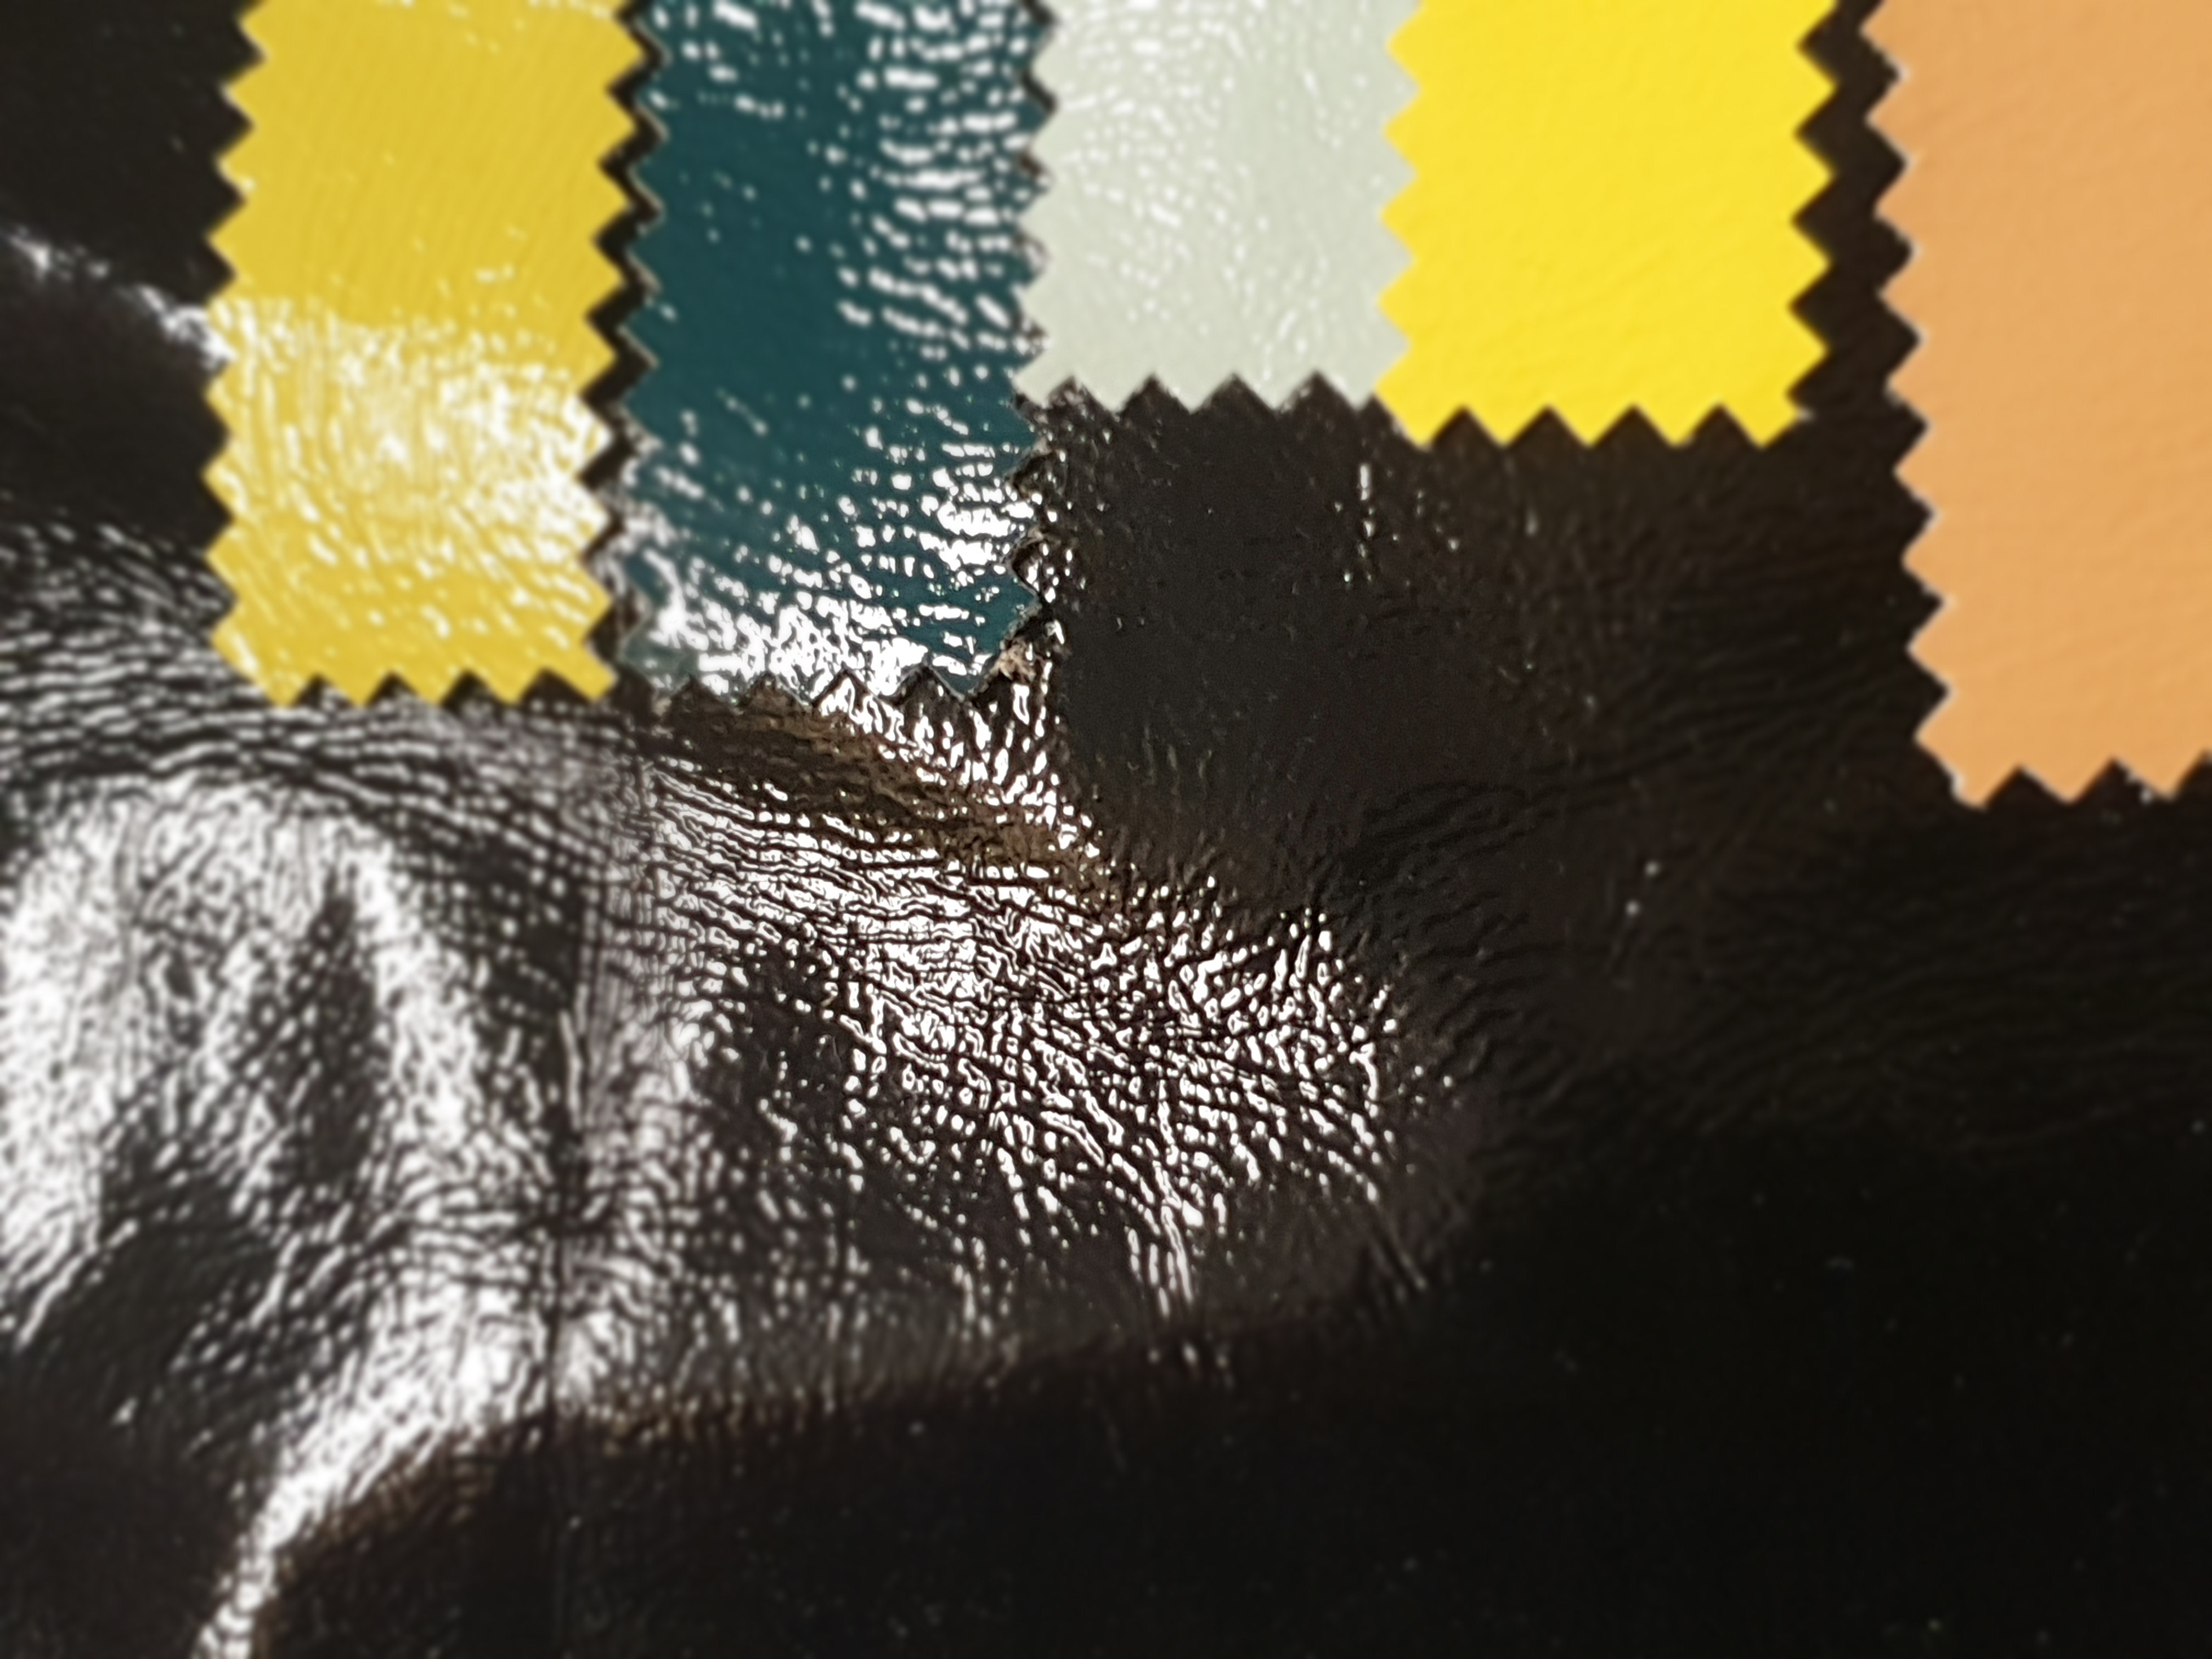 ART 7507 WIDTH cm133 WEIGHT gr470 - gr353 square meter - COMPOSITION 50 polyurethane 50 polyester - Black 100 – avocado 200 – green 200 - mint 100 – yellow 50mts – beige 350mts